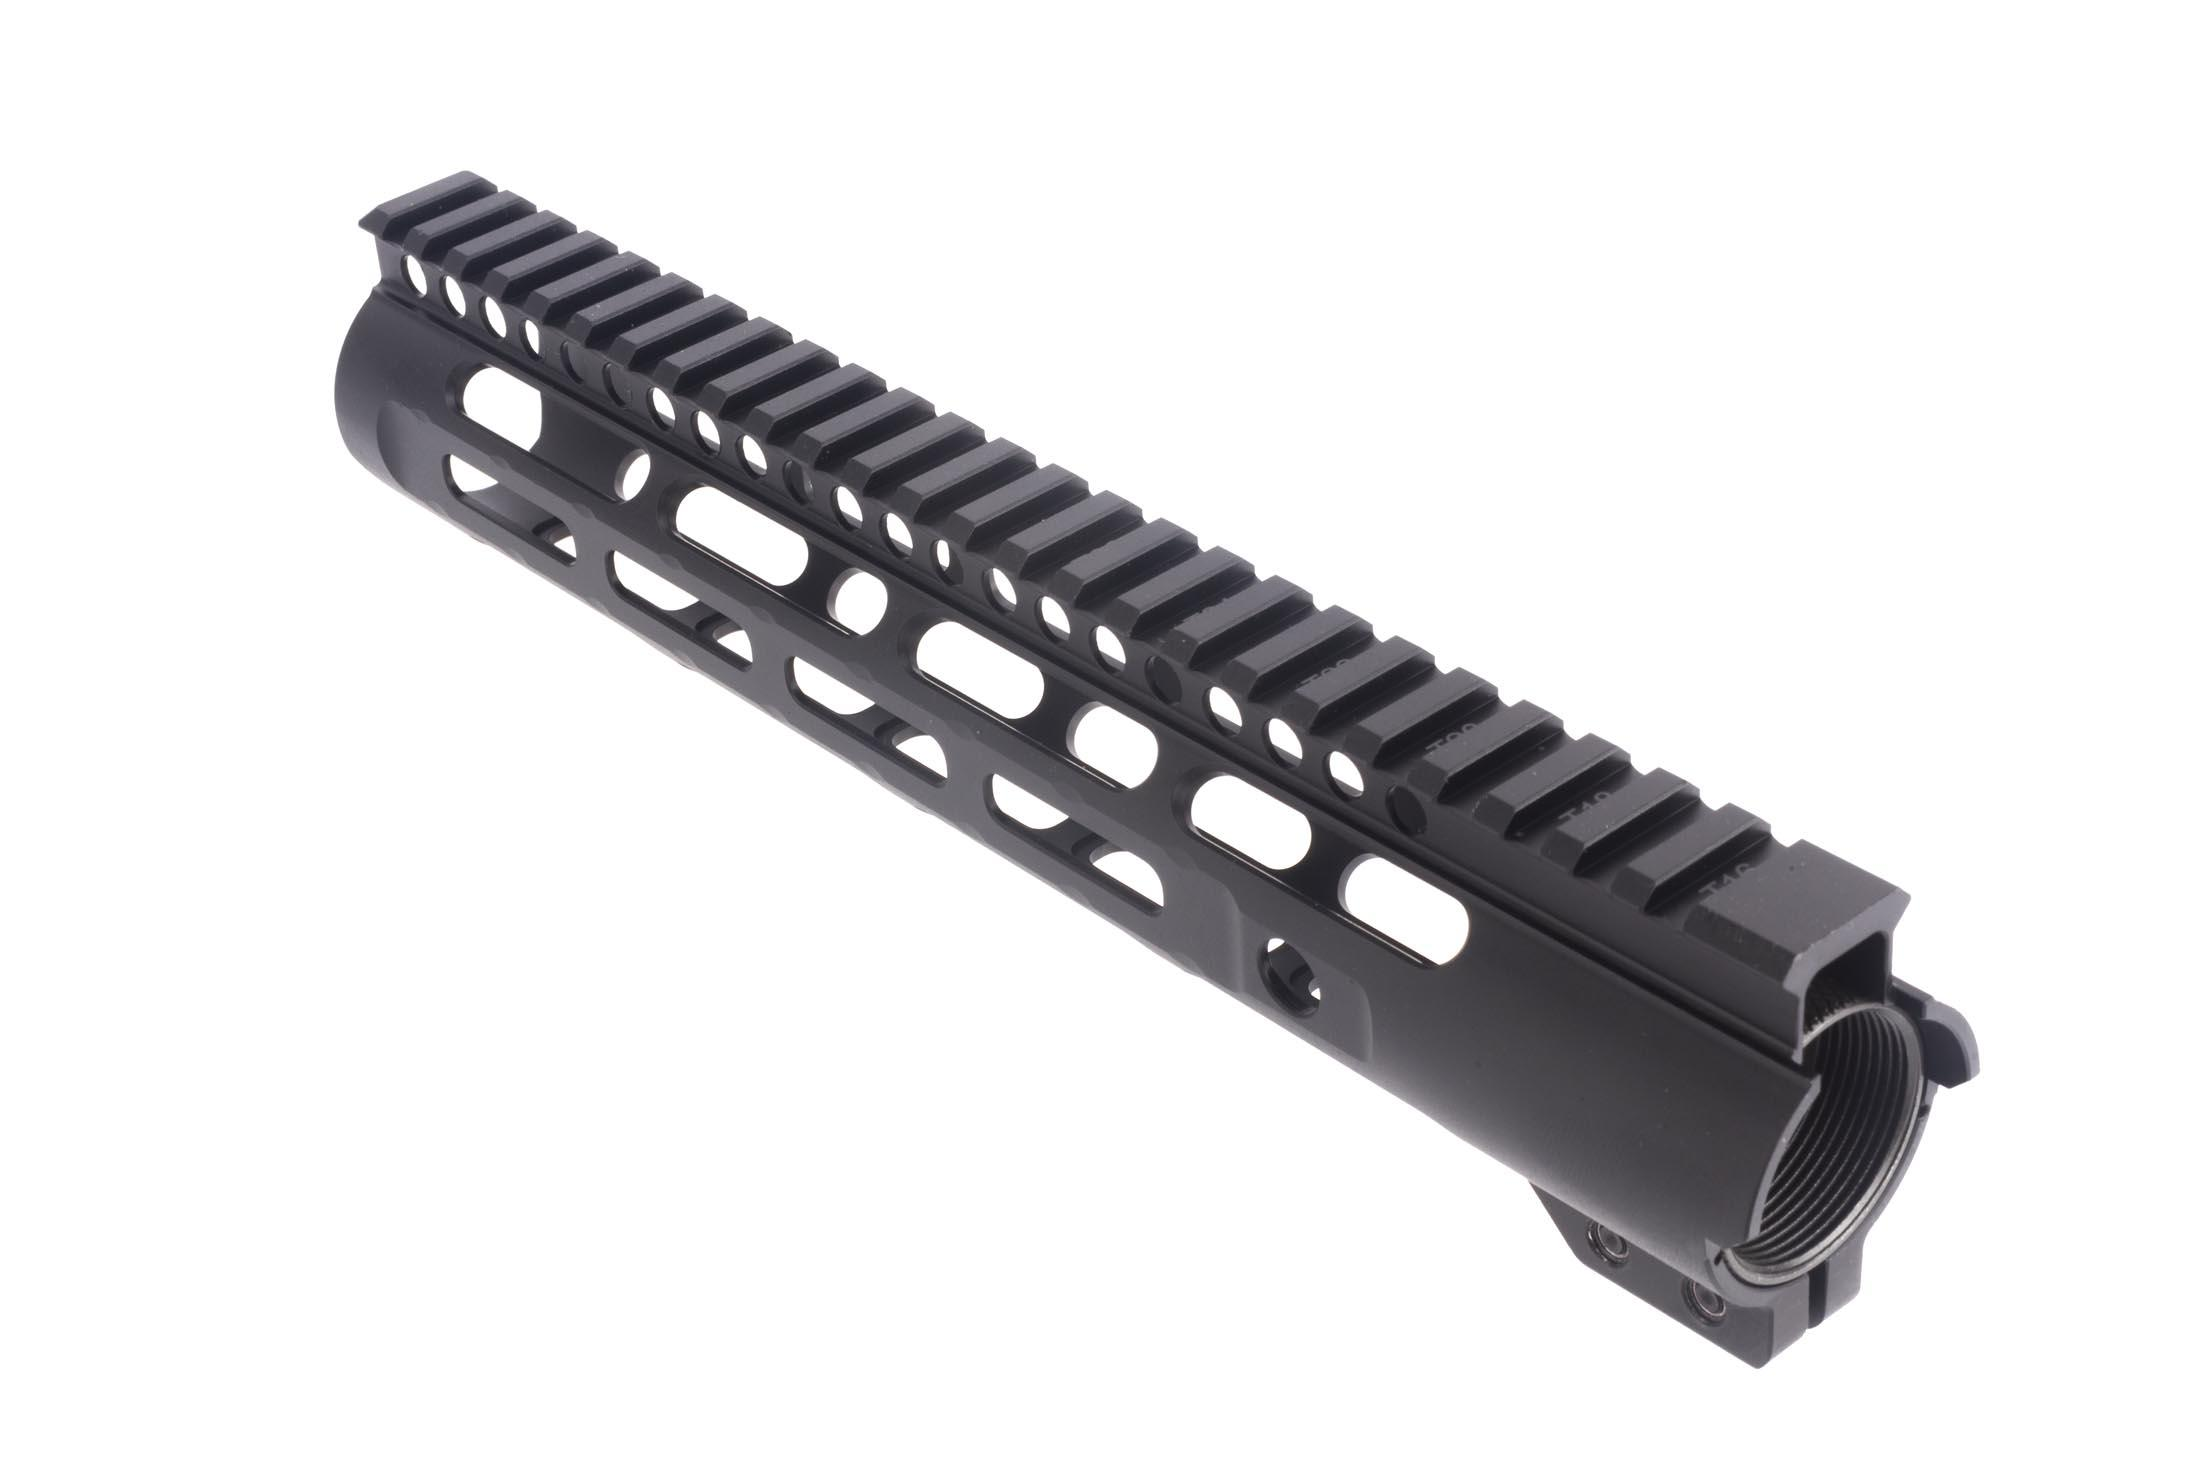 Midwest Industries free float 10.25in Slim Line handguard features M-LOK accessory slots and multiple QD sling swivel cups